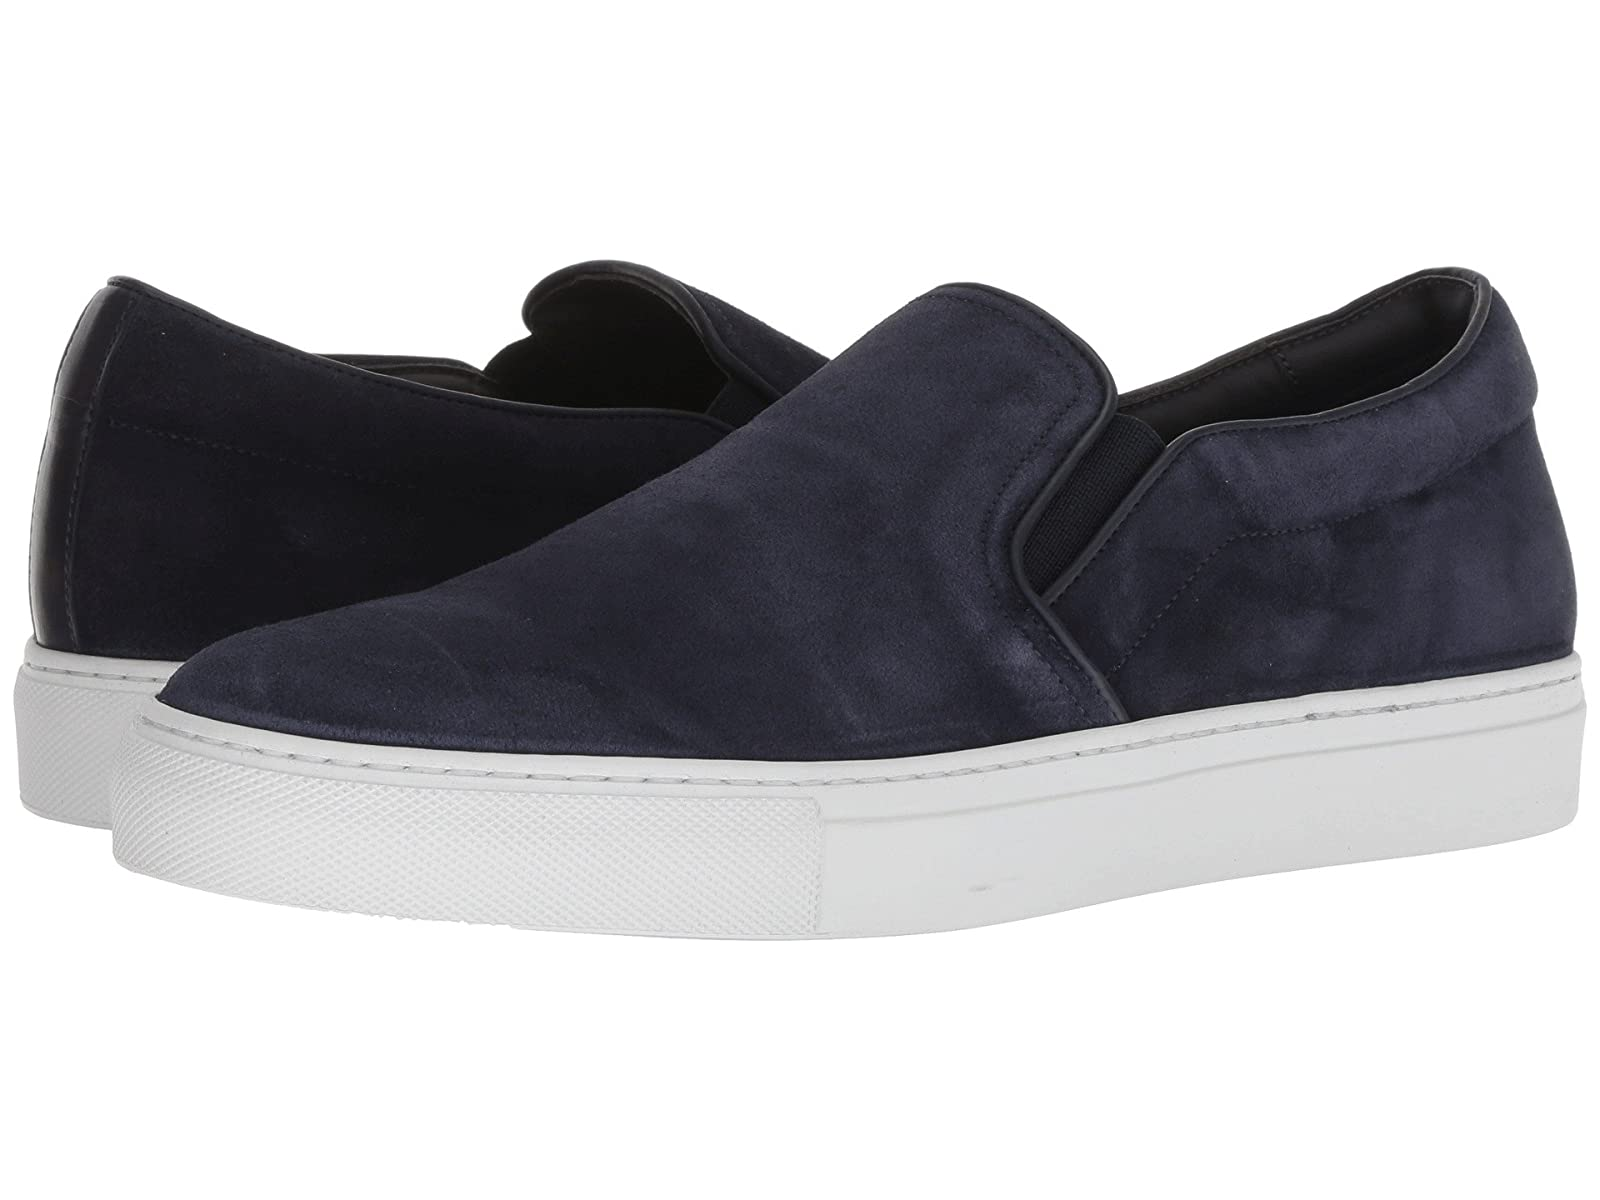 To Boot New York LyndonAtmospheric grades have affordable shoes